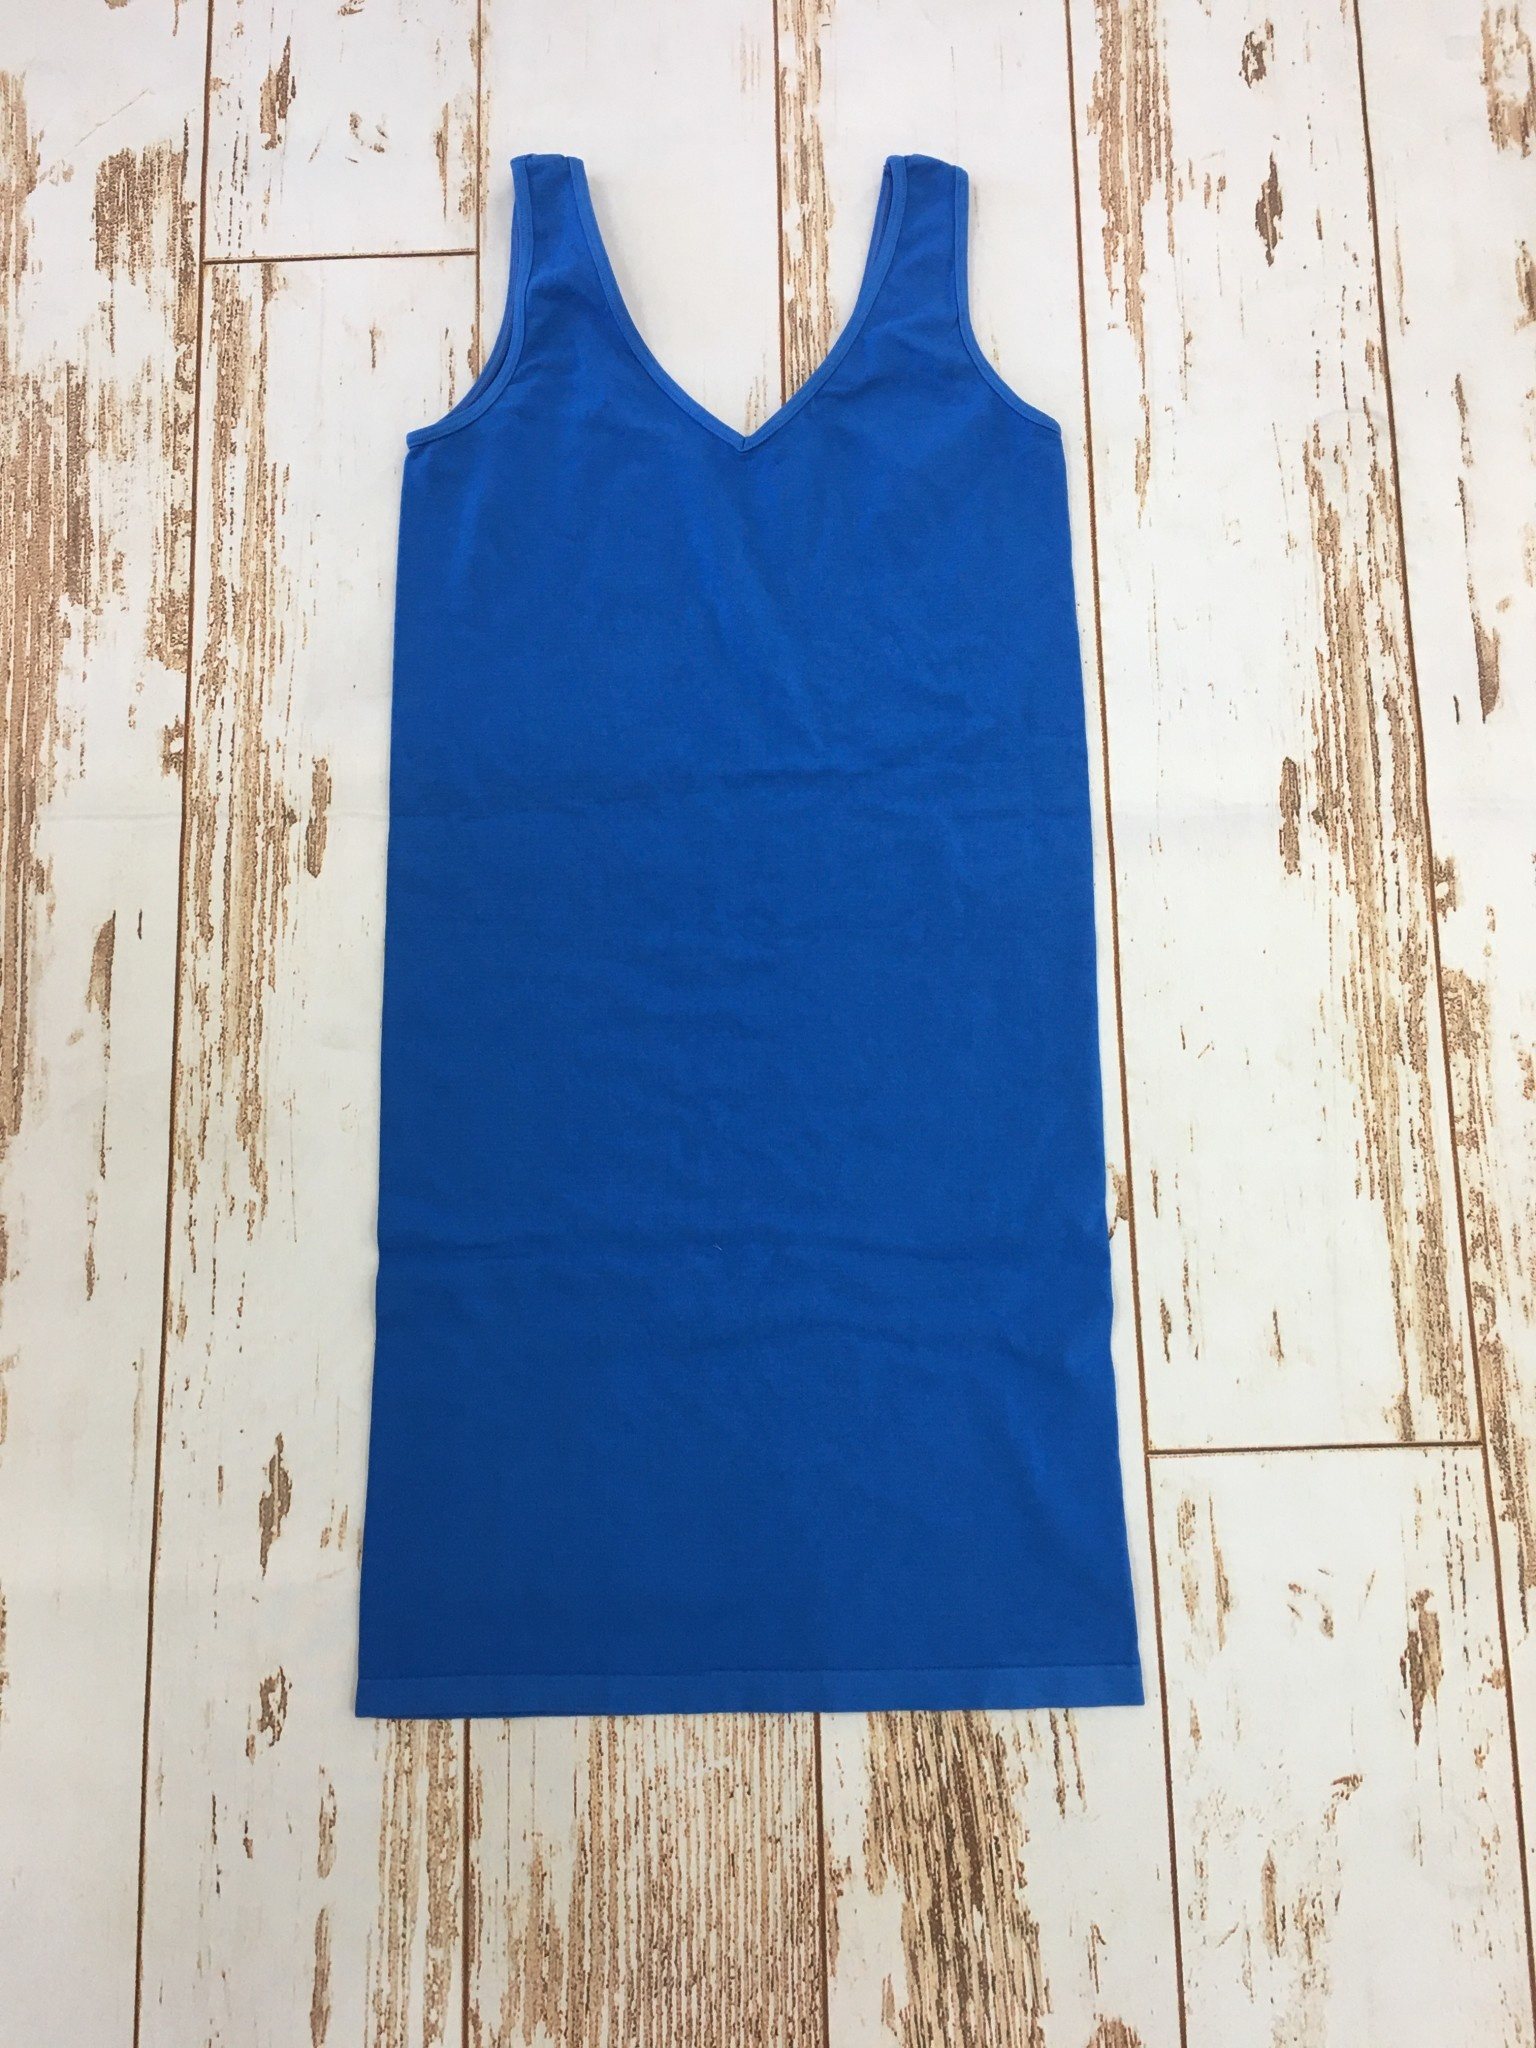 M Rena Tank Dress in French Blue